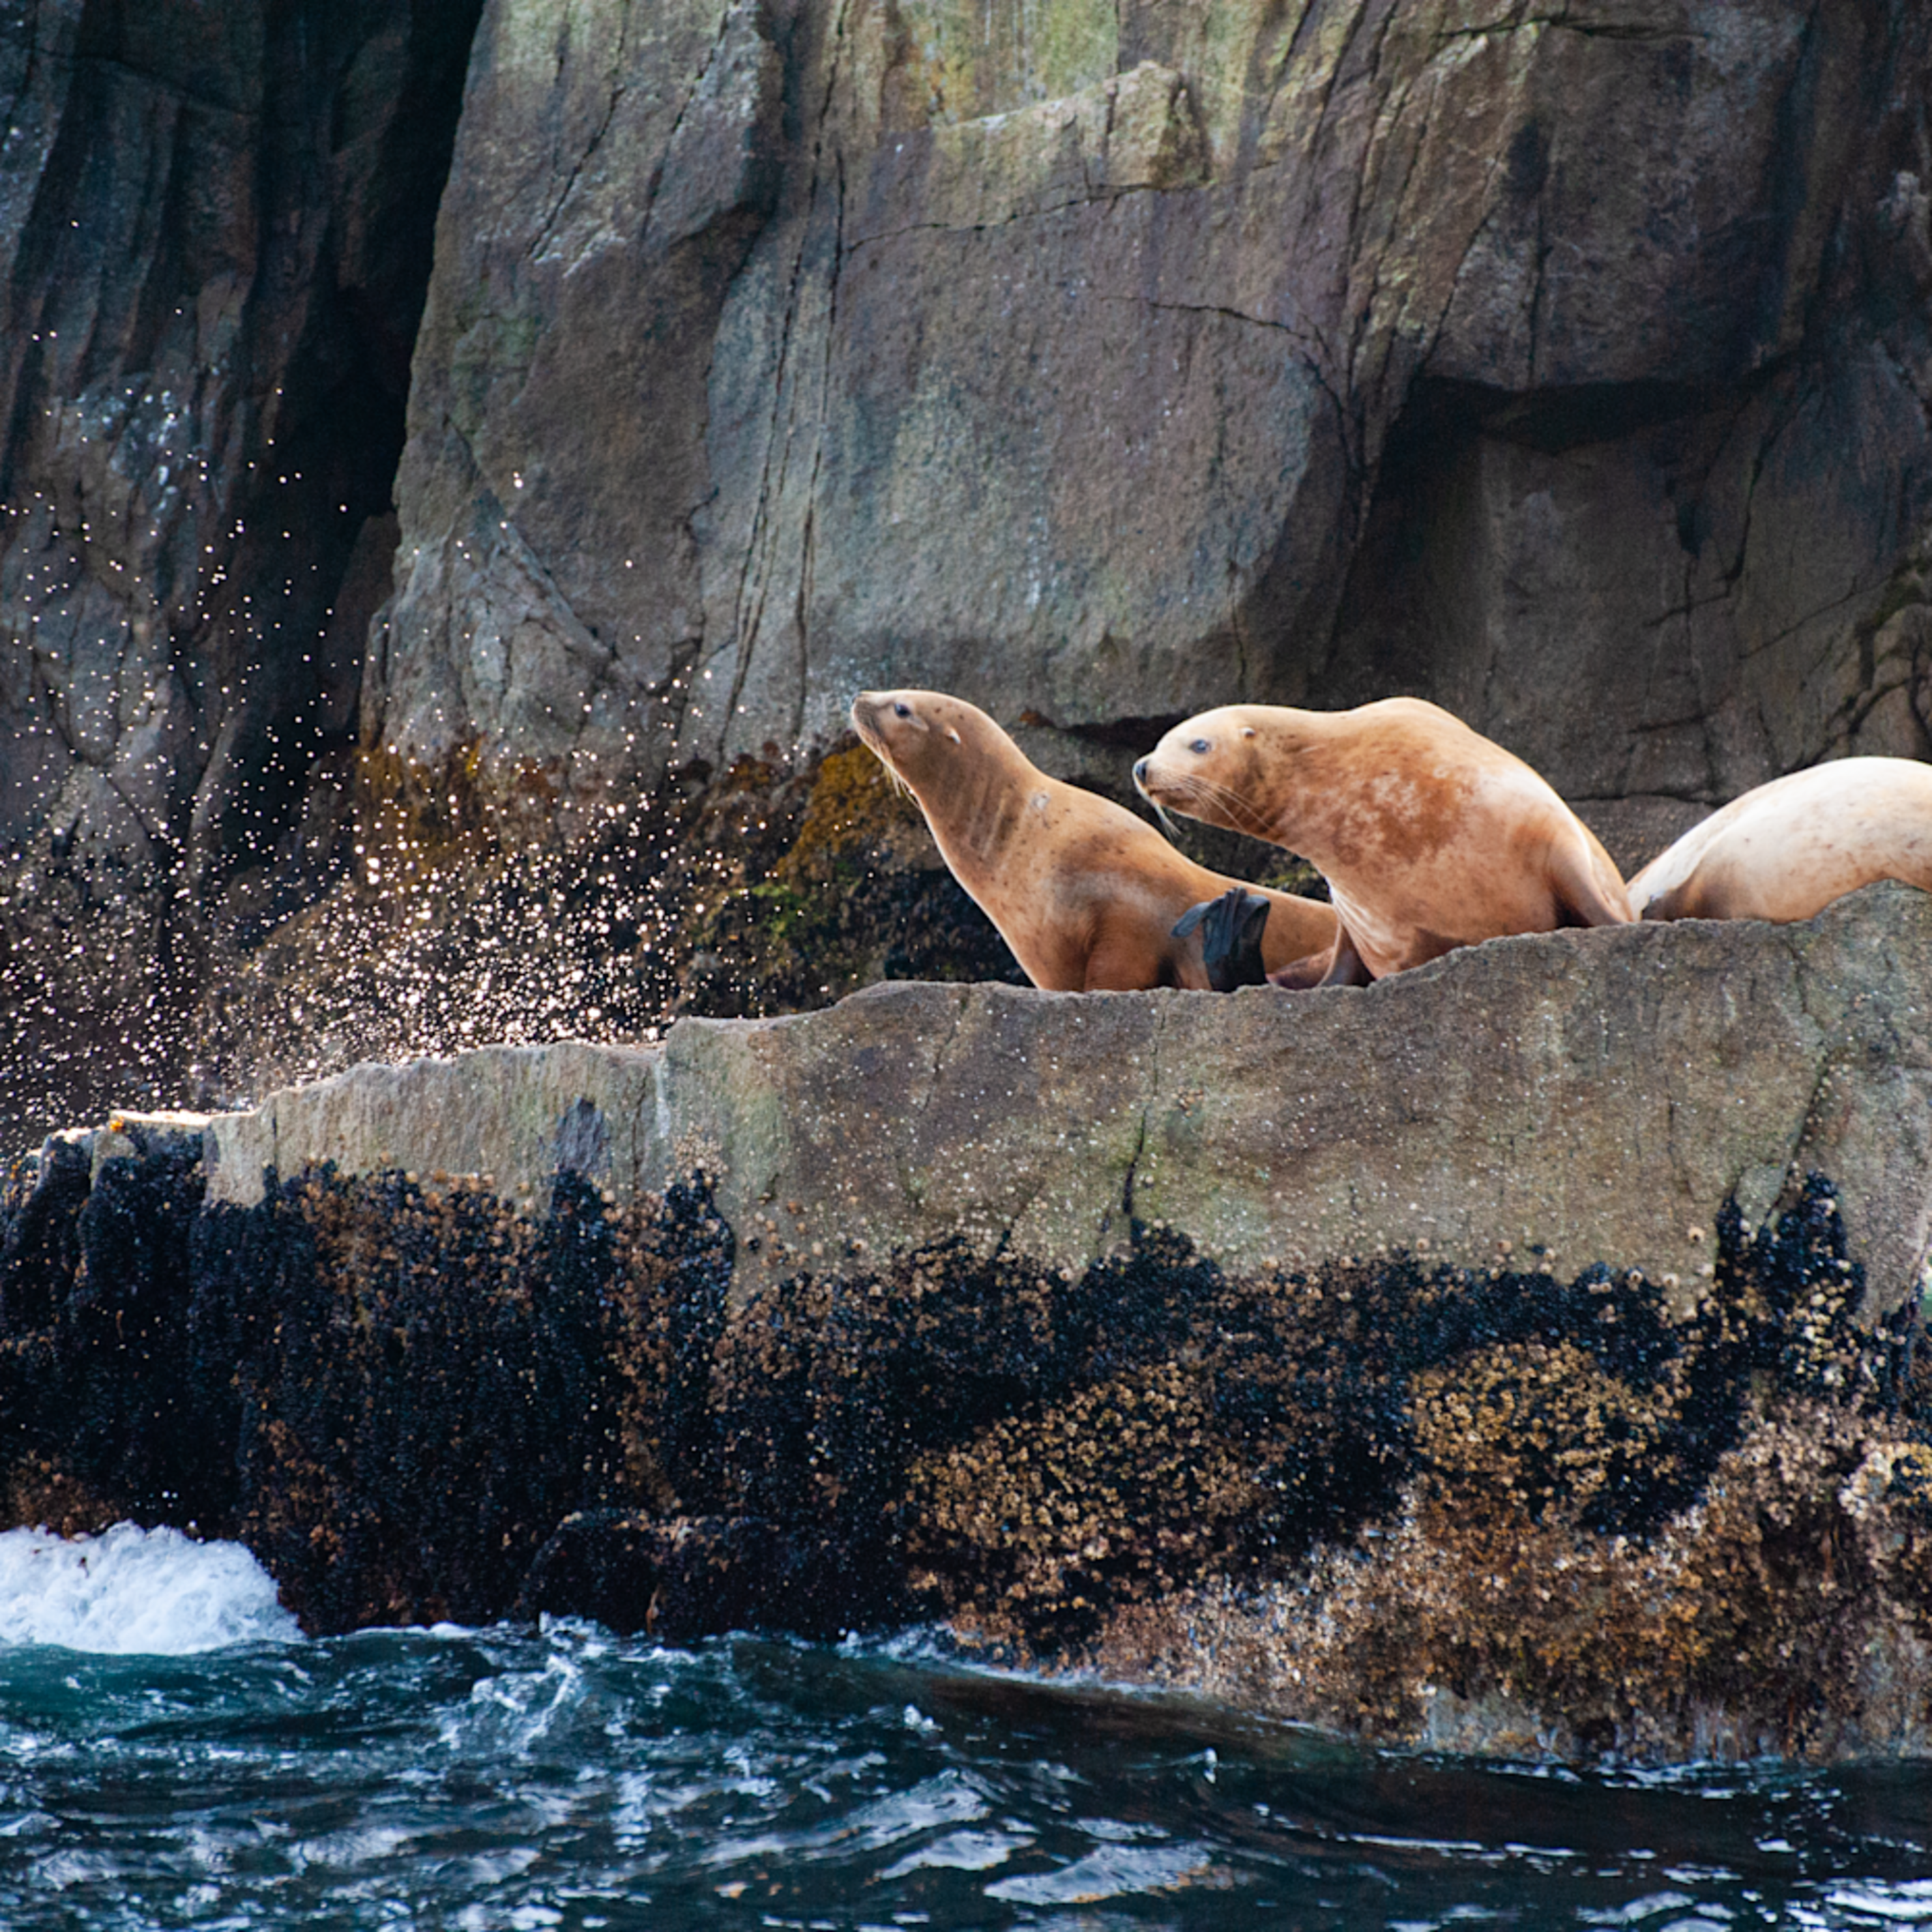 Steller sea lions larry curly and mo 1 cwgqx1